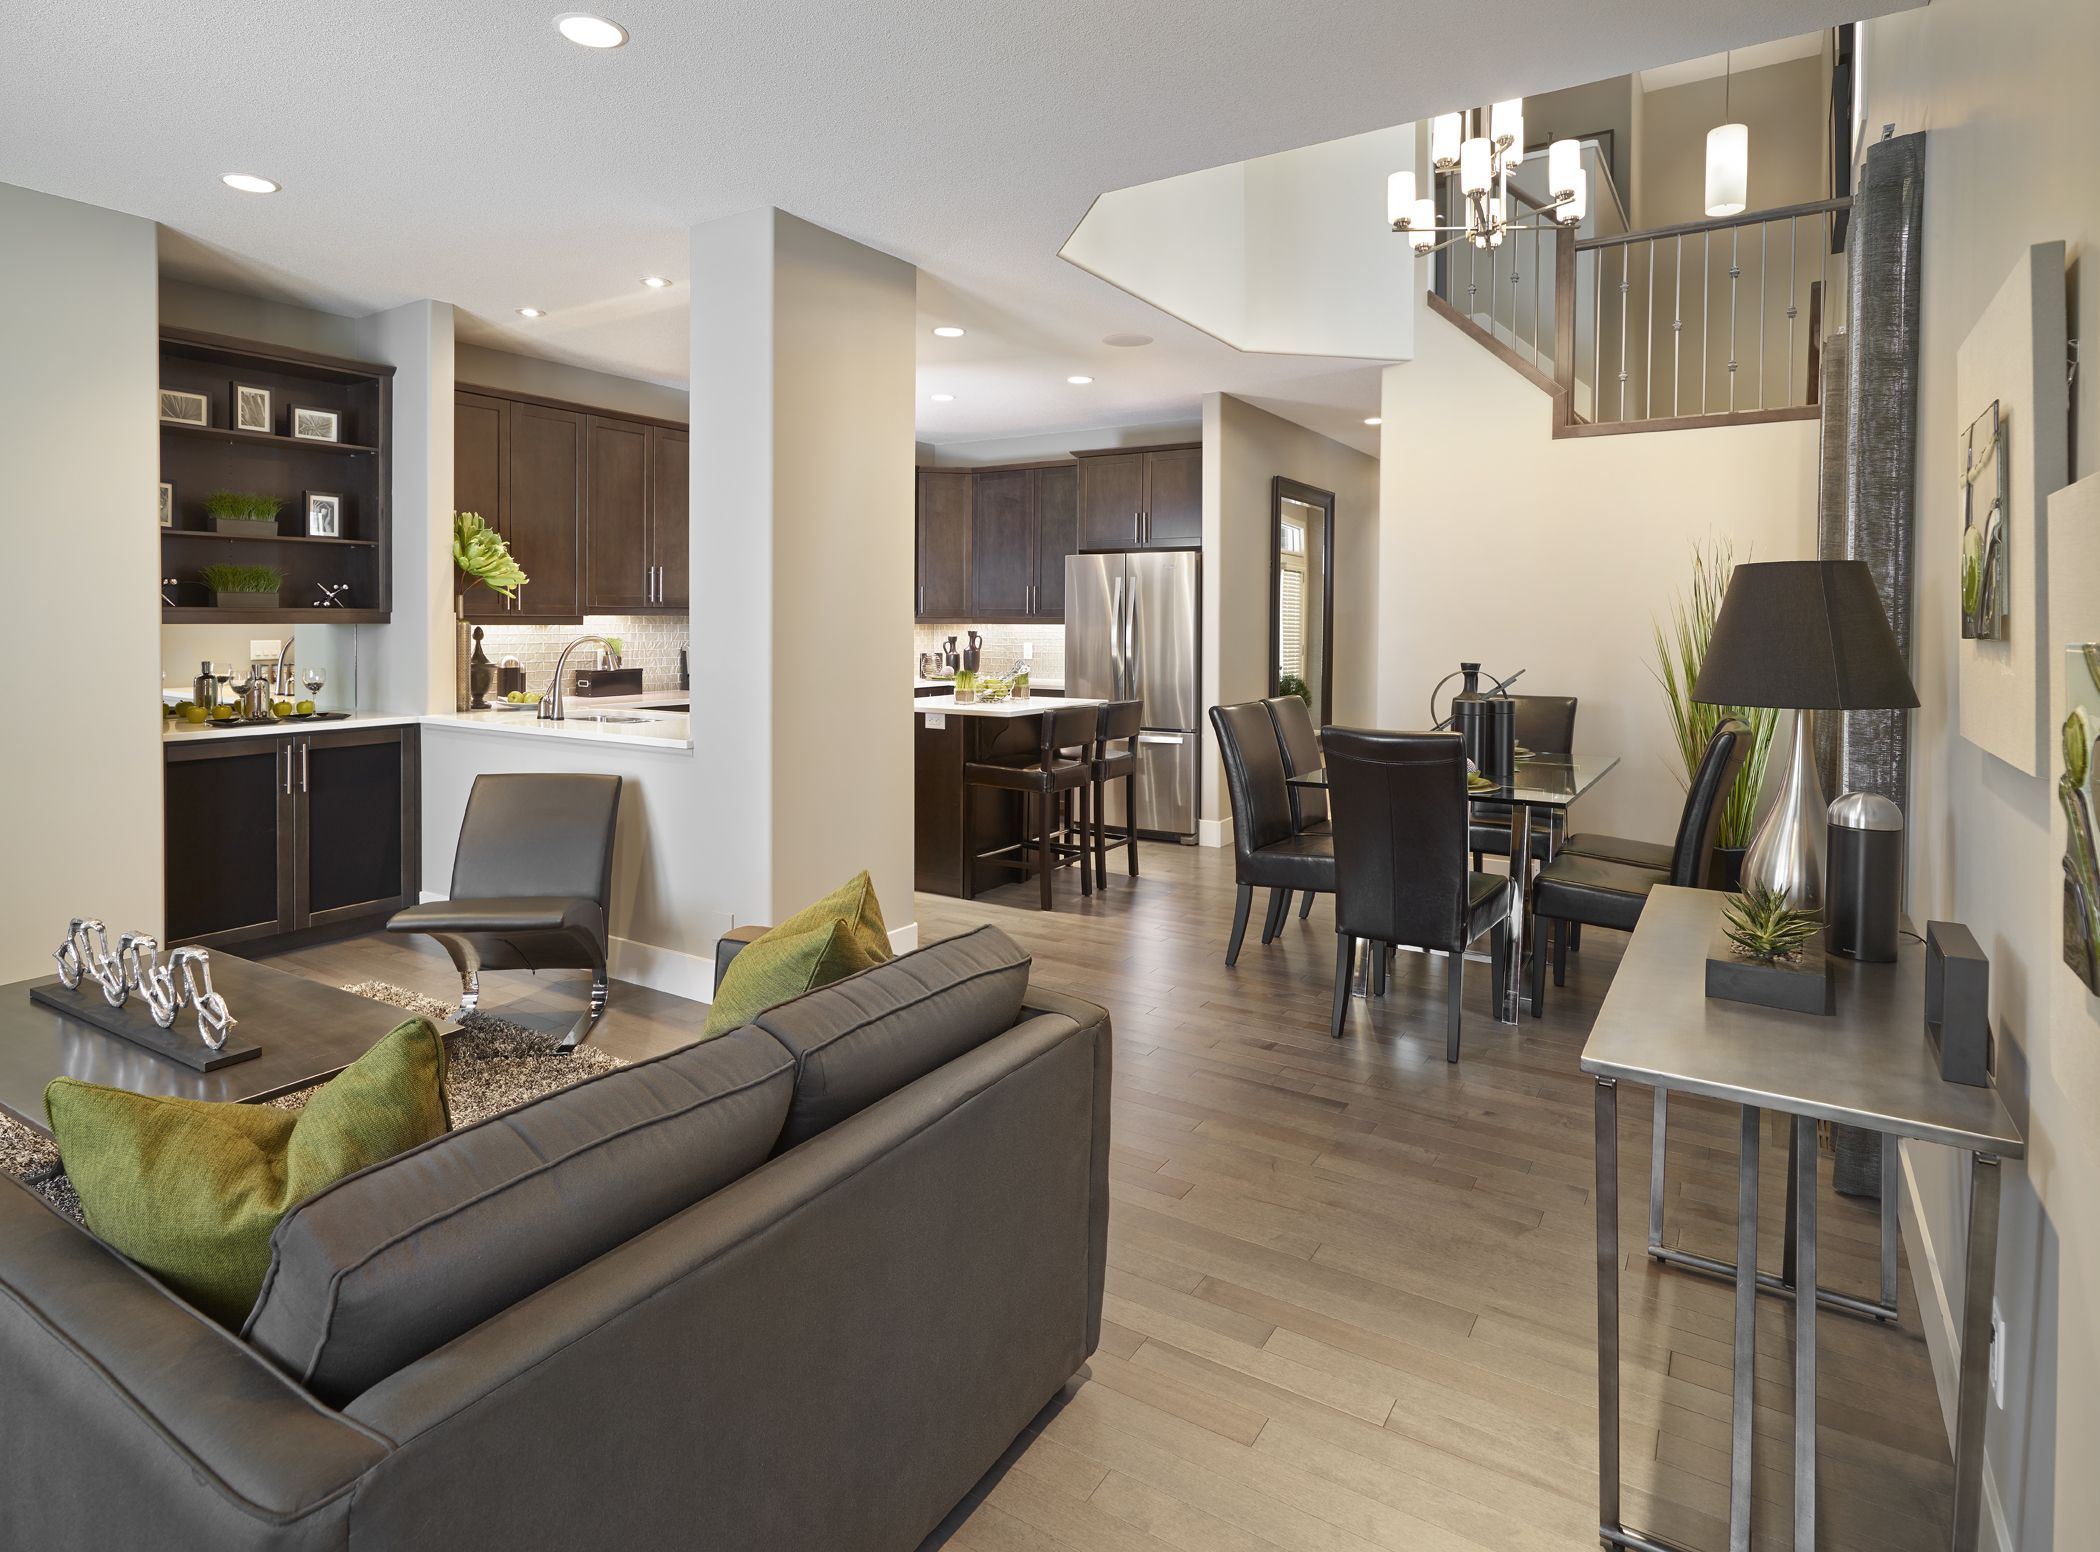 Mansion interior living room with tv  The Manison by Kimberley Homes   For my future home!!!!   Pinterest ...